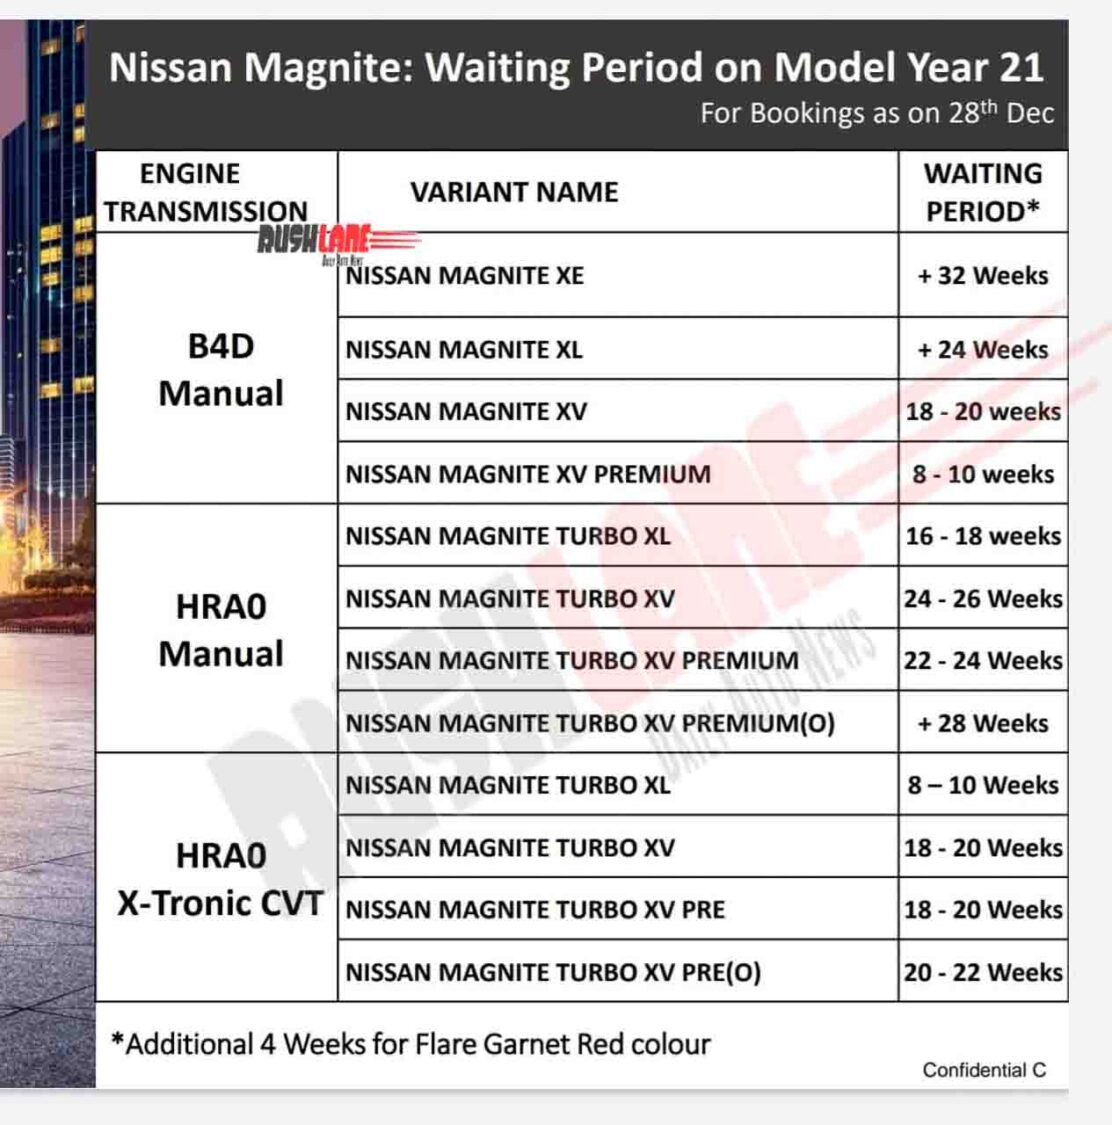 Nissan Magnite Waiting Period